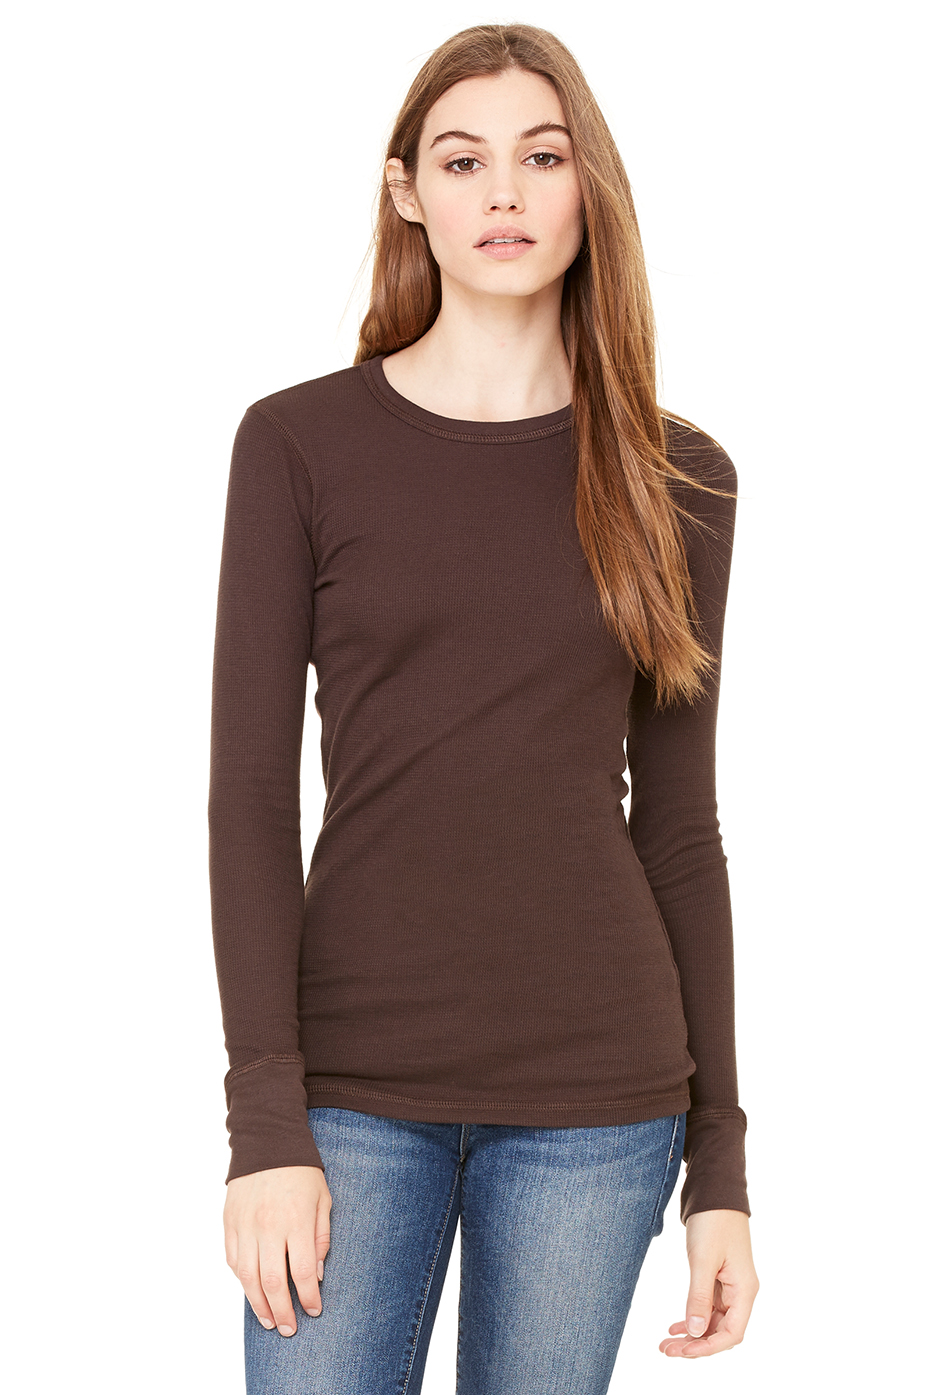 Women's Thermal Long Sleeve Tee | Bella-Canvas